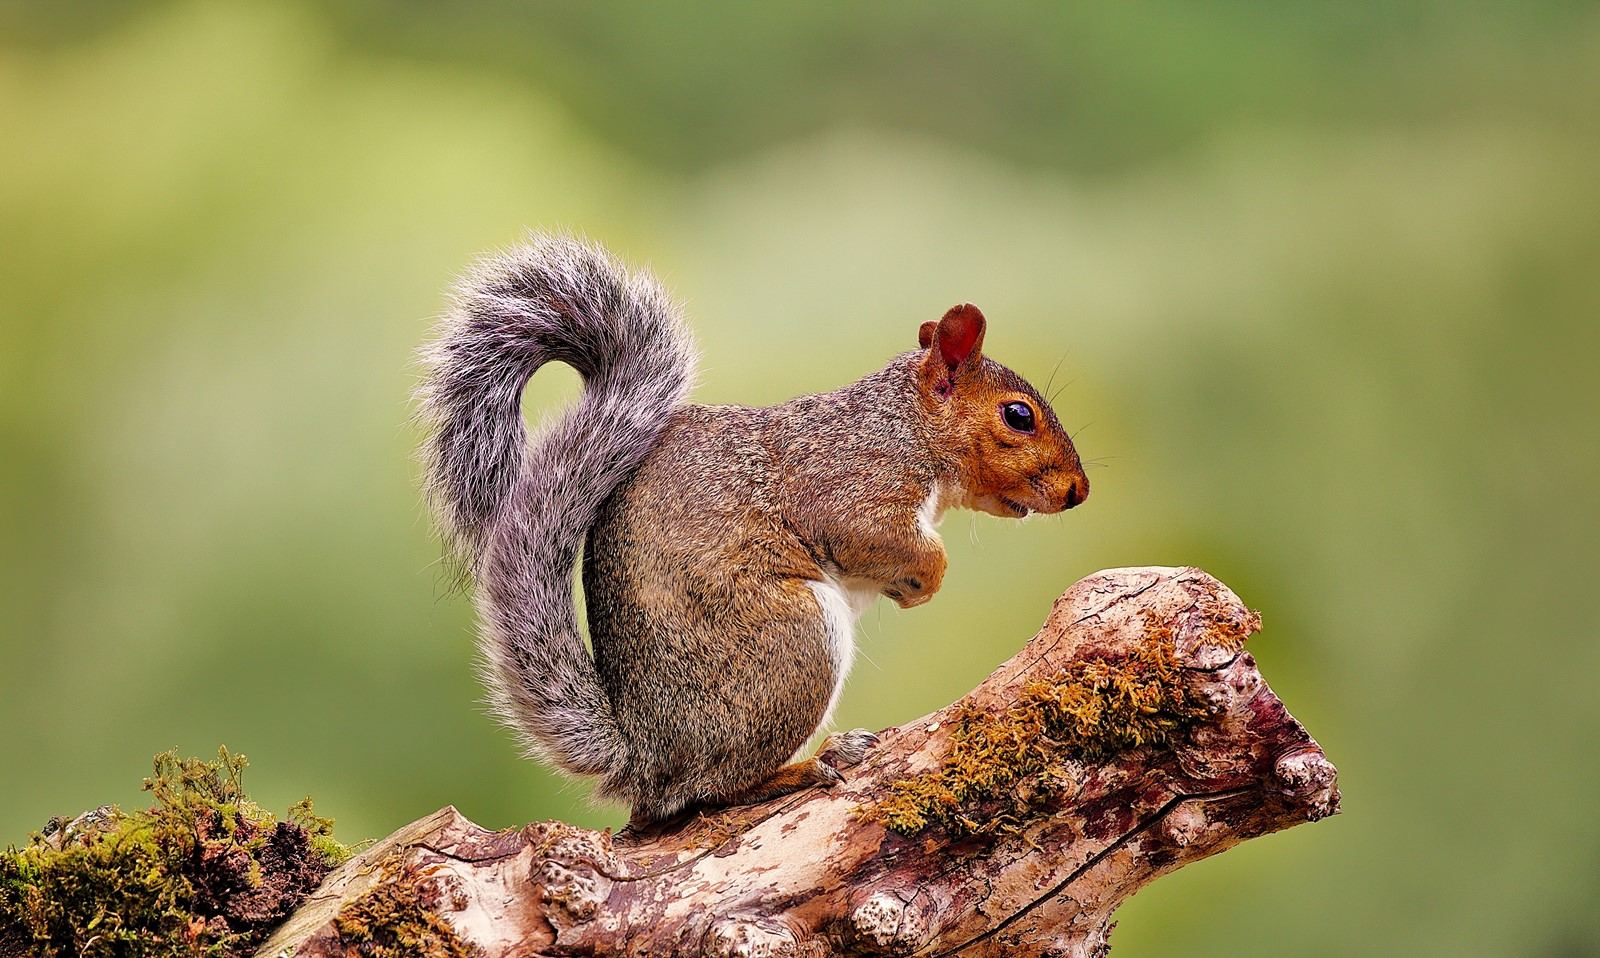 'Pensive Squirrel' by Shannon James